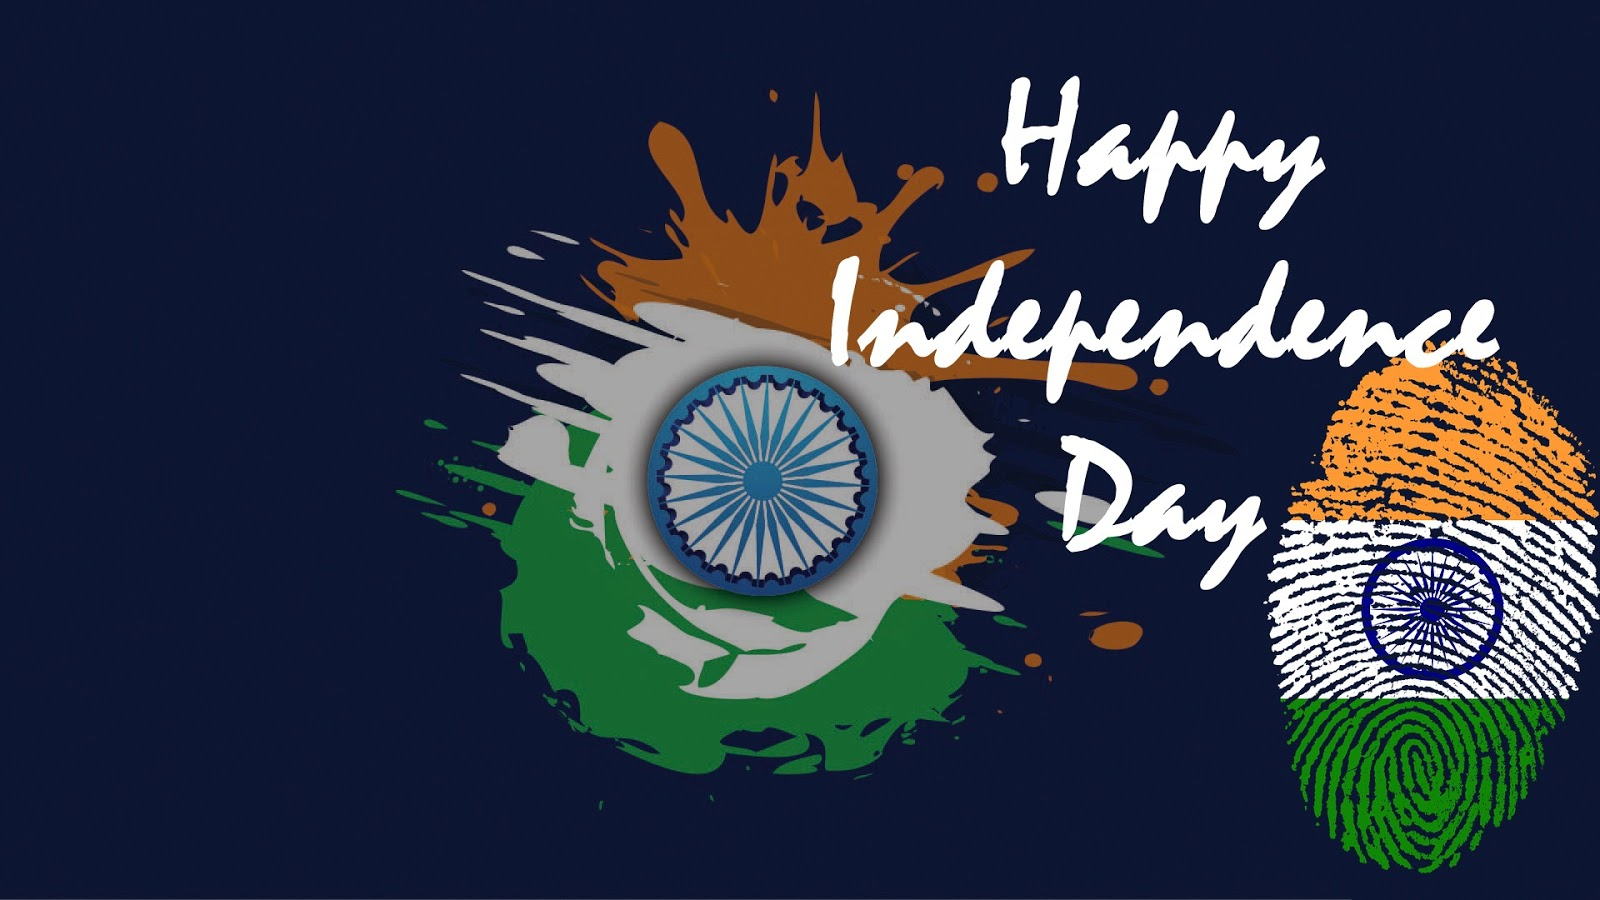 Hd wallpaper upload - Hope You Found All The Images On 15 August Independence Day Images 2017 Hd Wallpapers Photos Pictures For Facebook Whatsapp And If You Was Us To